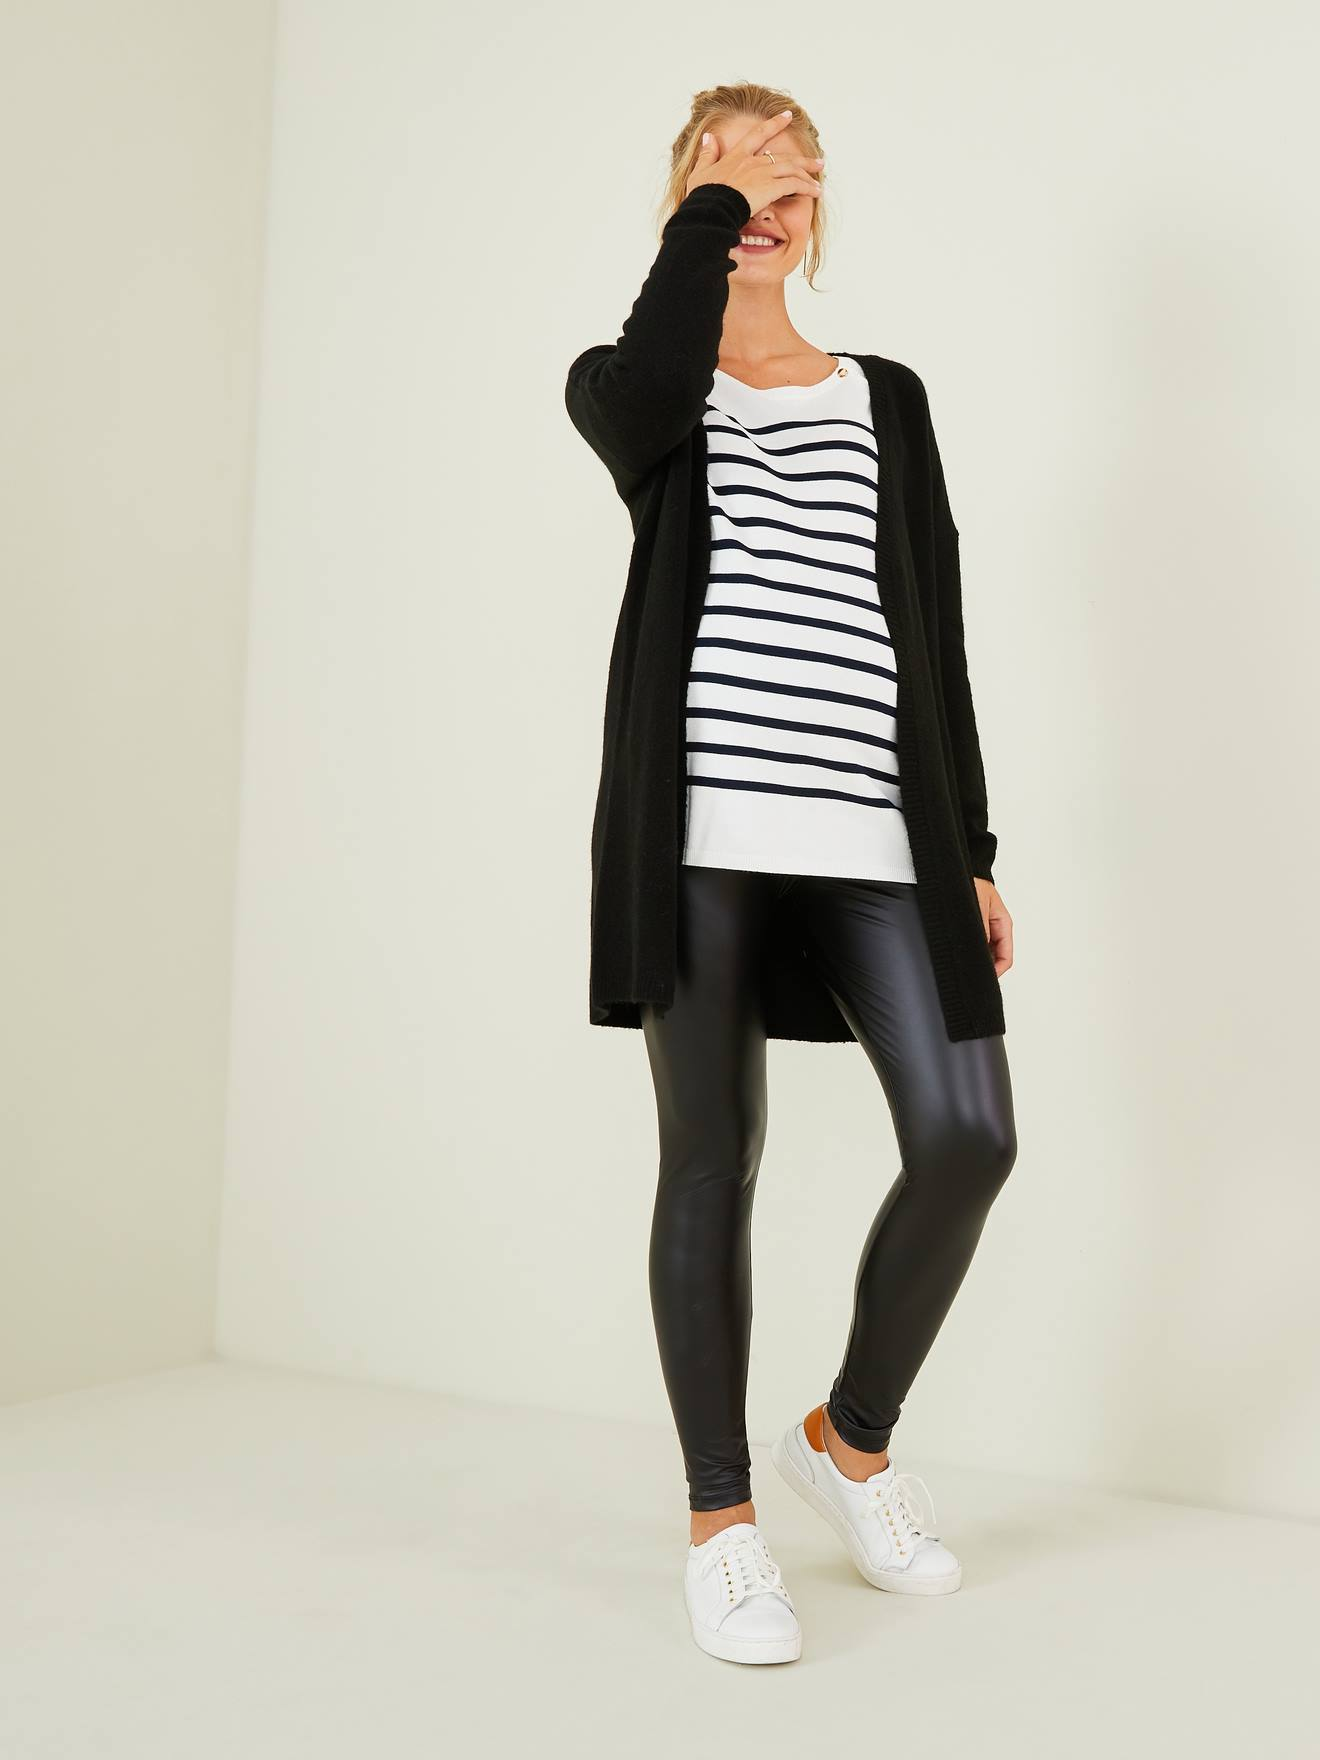 Faux Leather Leggings For Maternity Black Dark Solid Maternity